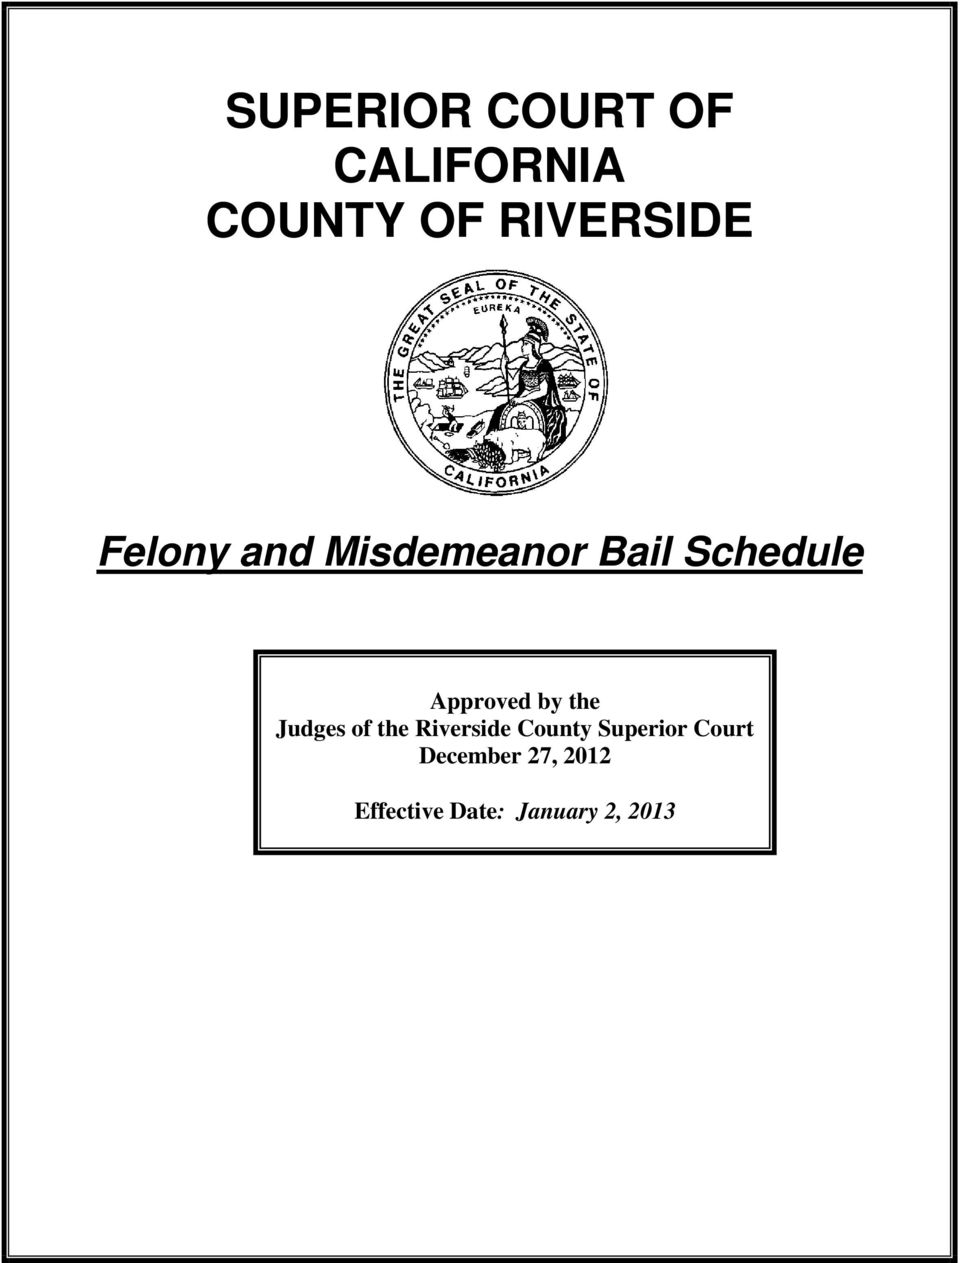 SUPERIOR COURT OF CALIFORNIA COUNTY OF RIVERSIDE - PDF